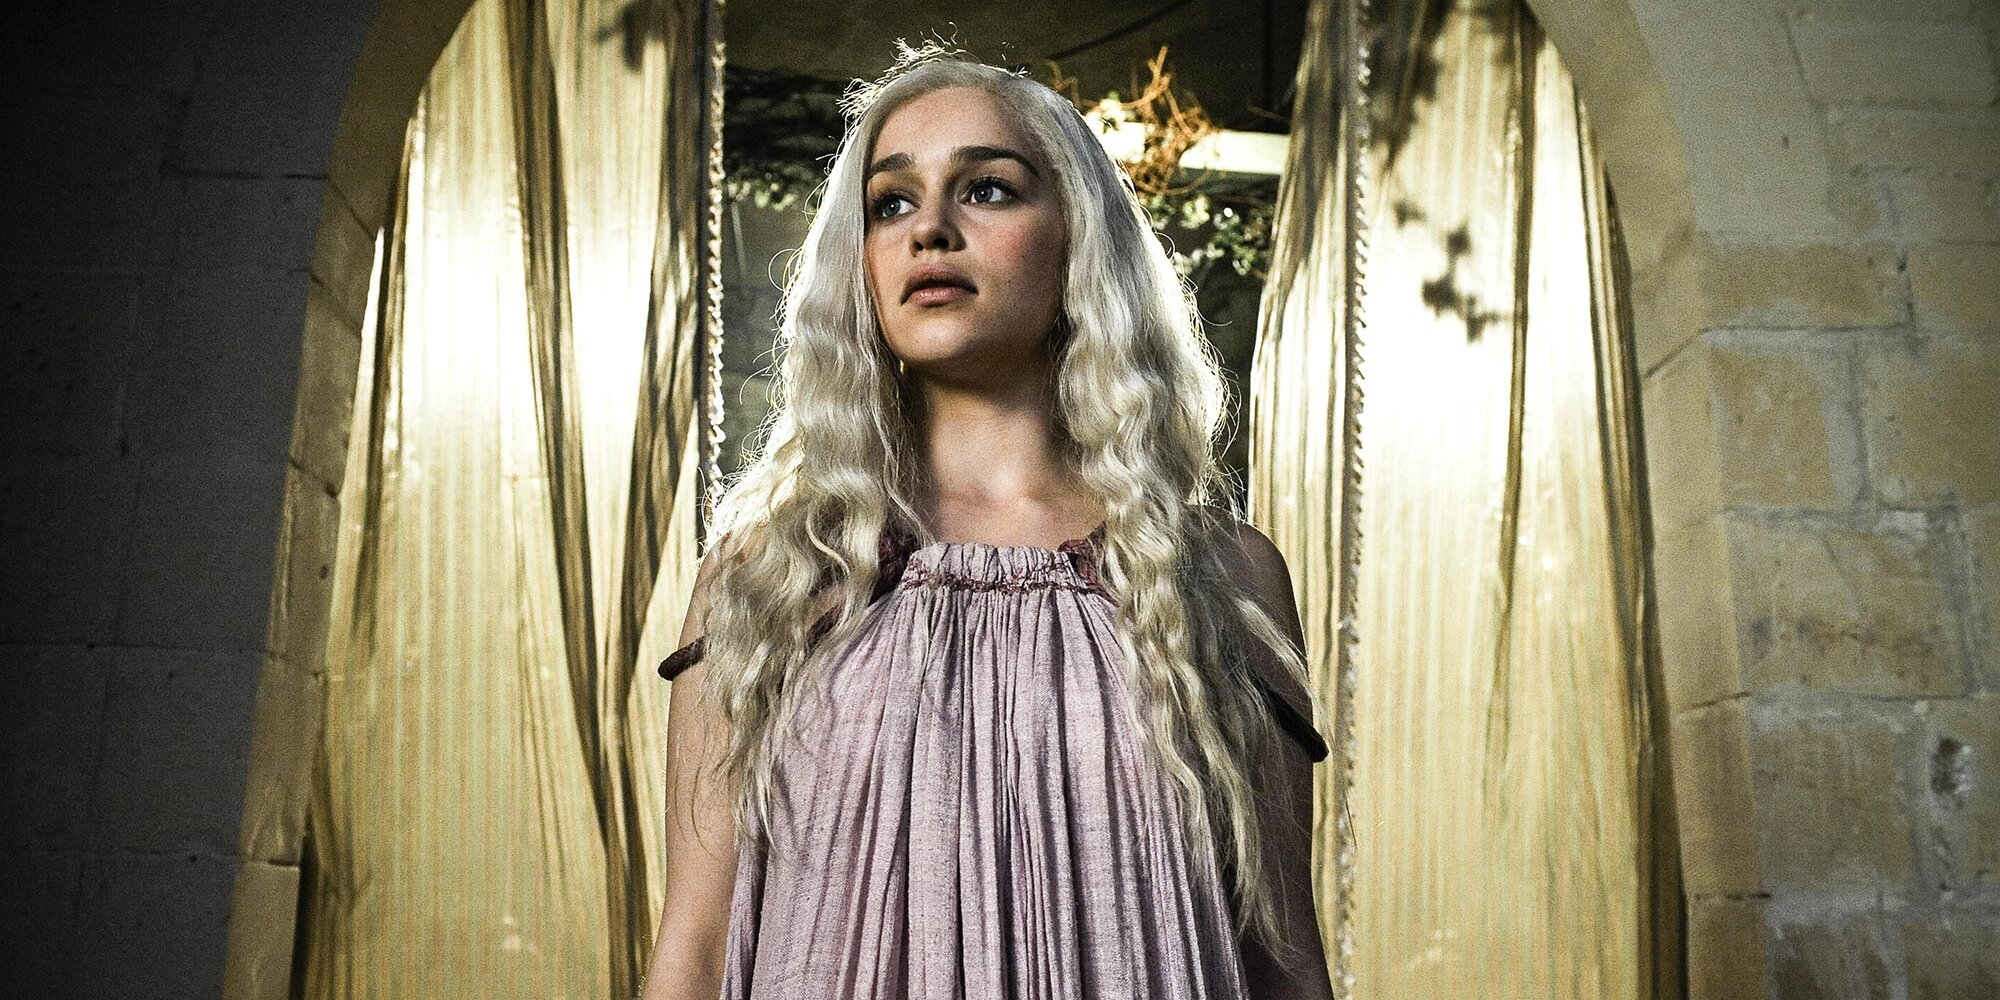 Emilia Clarke looks back on 'Game of Thrones' season 1 - and ahead to the many upcoming prequels